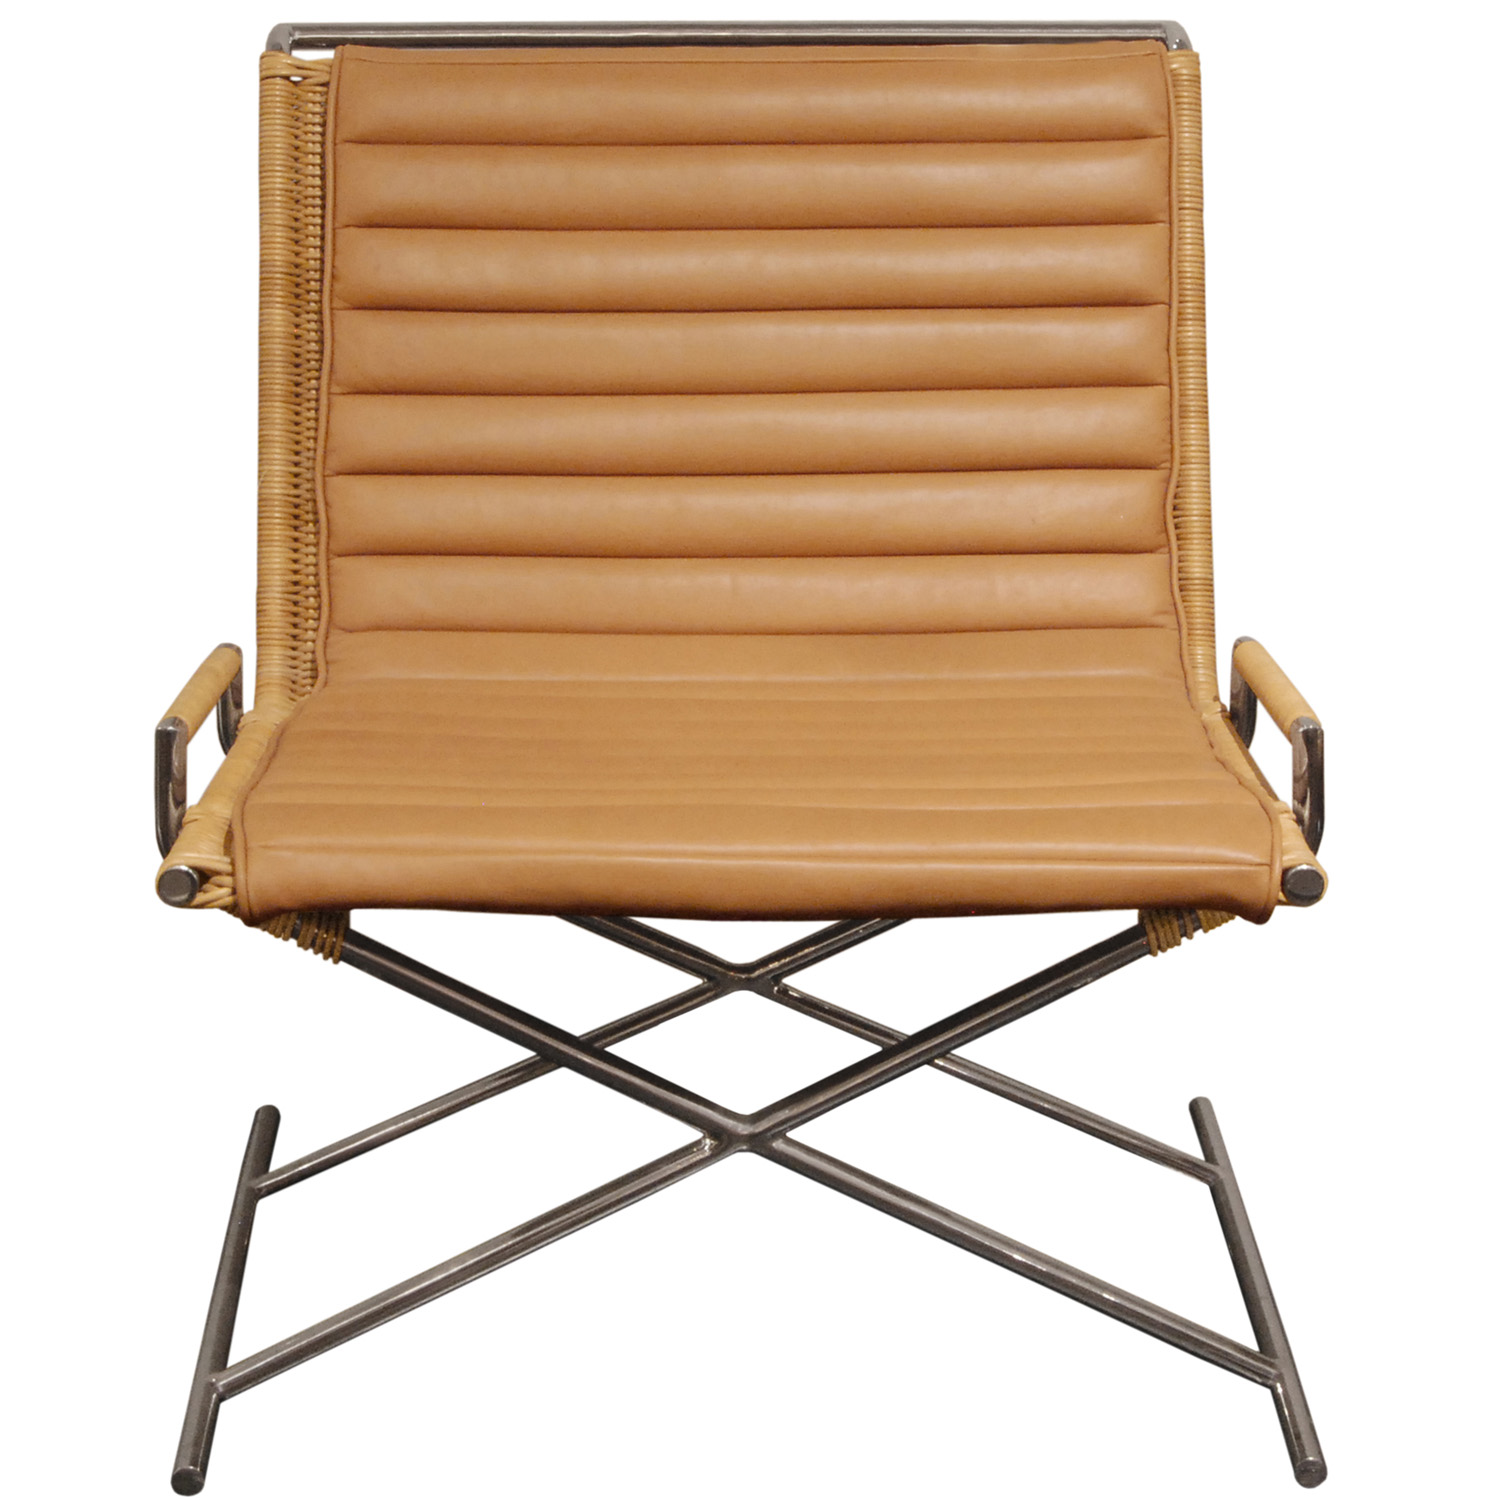 Bennet 120 Sled Chairs loungechairs115 front view hires.jpg